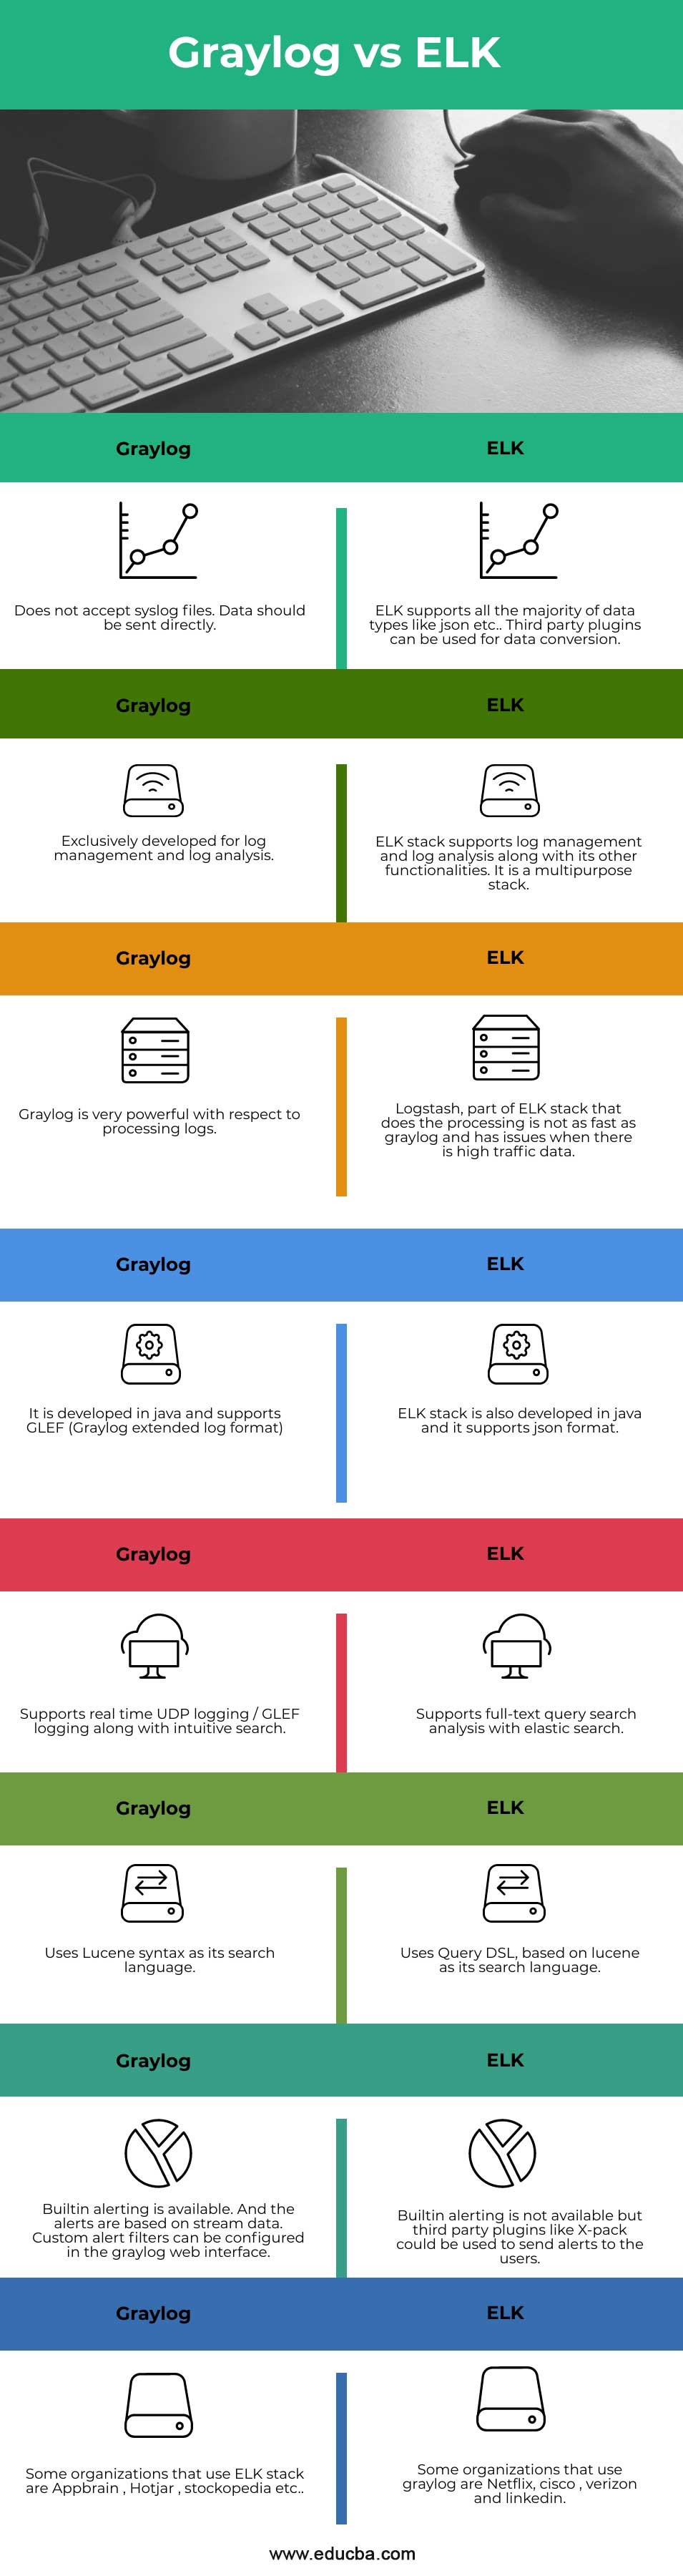 Graylog-vs-ELK-info